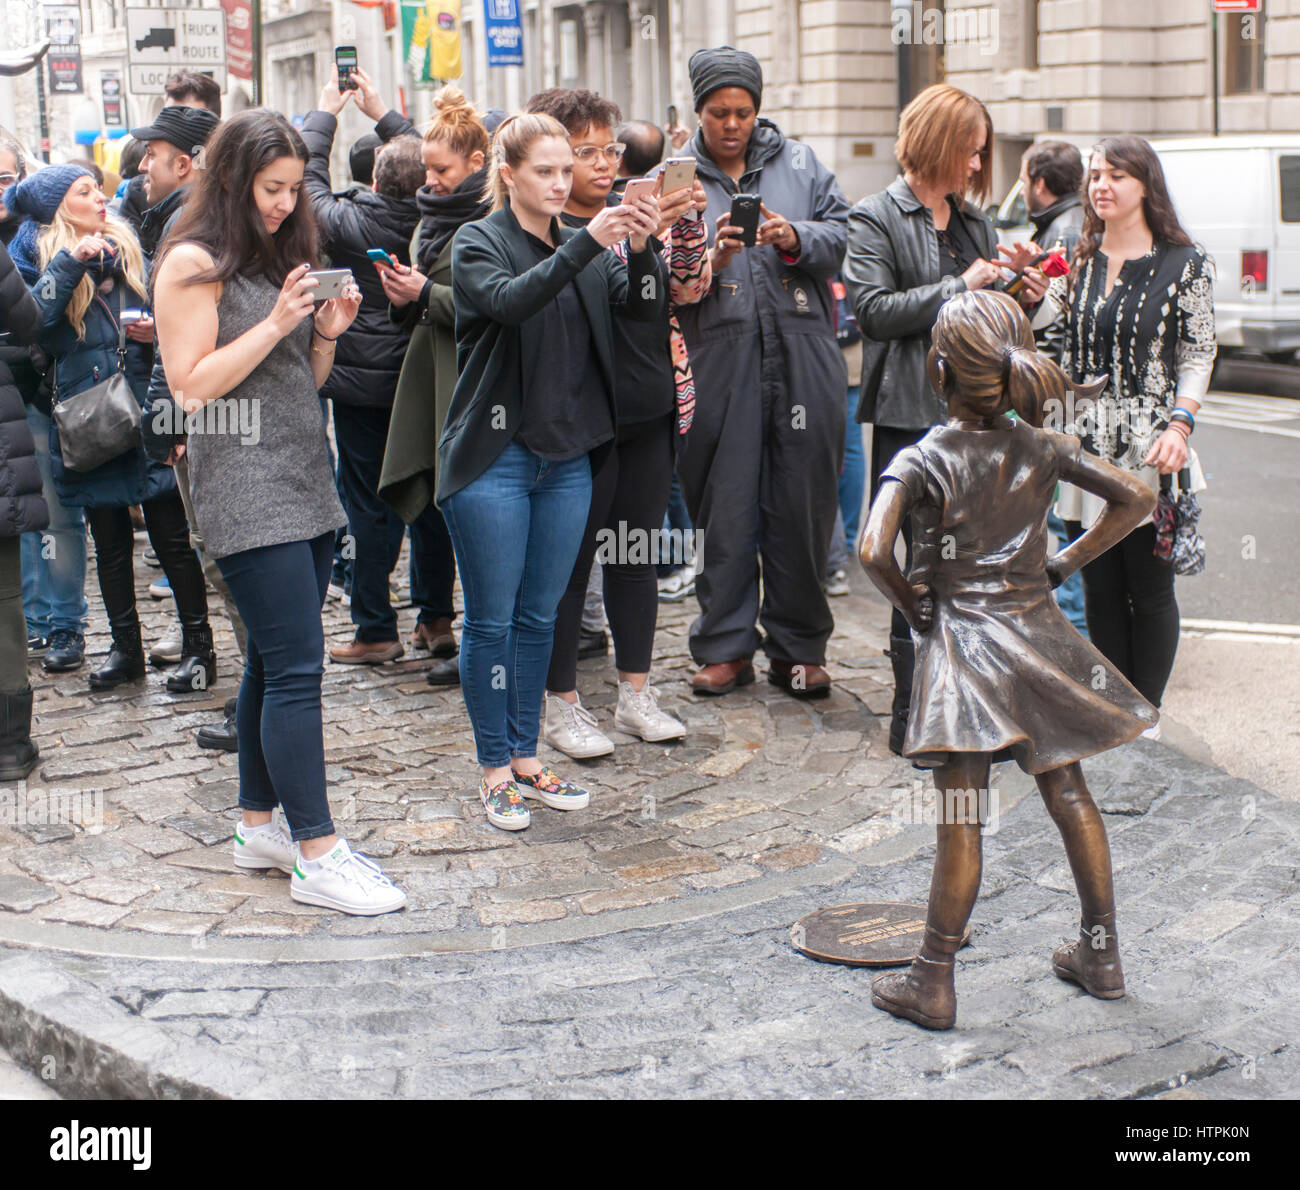 "The bronze statue, ""The Fearless Girl"" by the artist Kristen Visbal attracted attention at Bowling Green Park in Stock Photo"